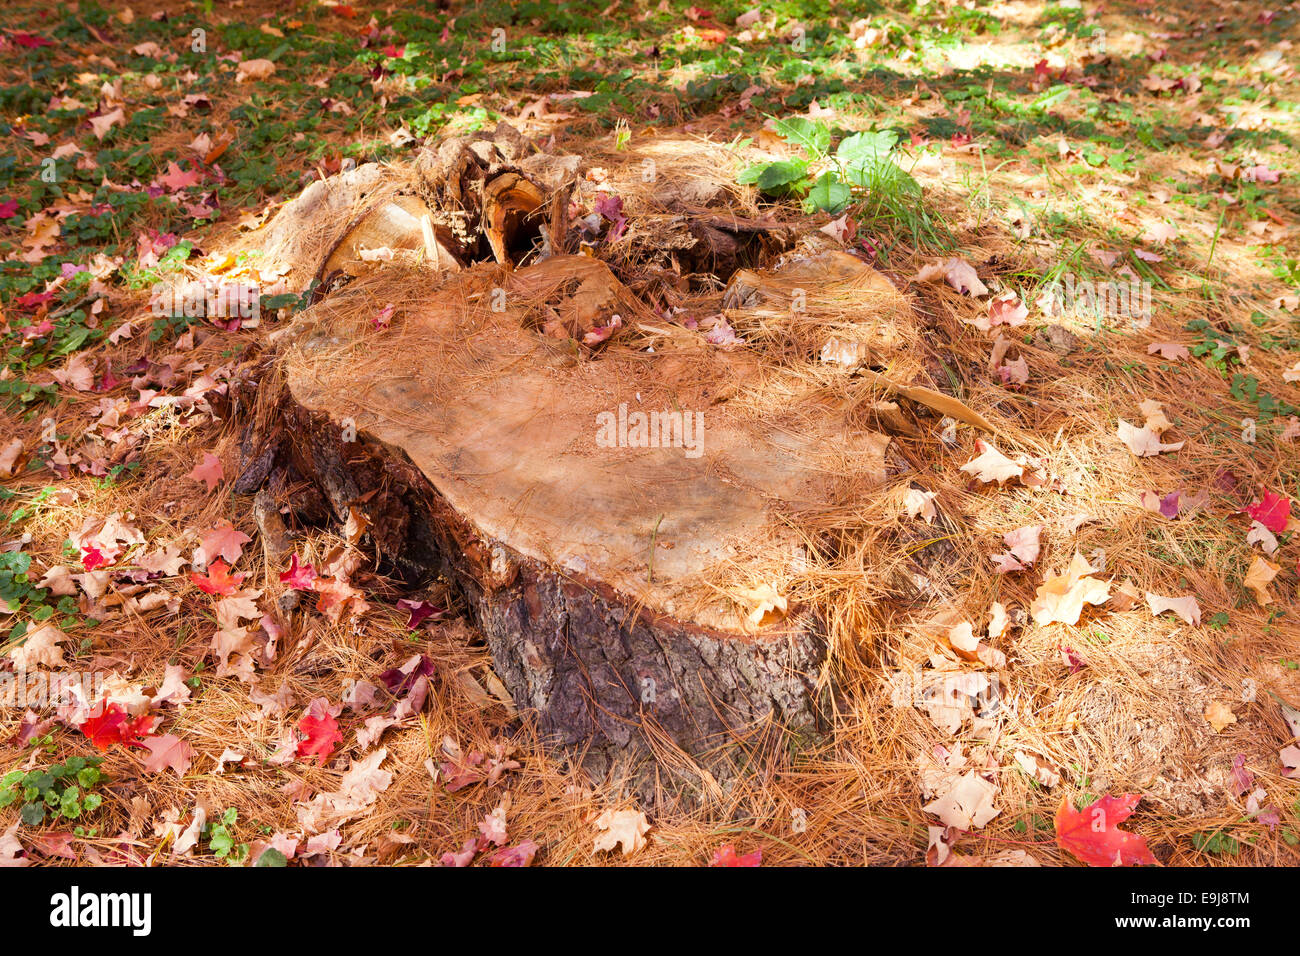 Tree stump after felling of tree - USA - Stock Image